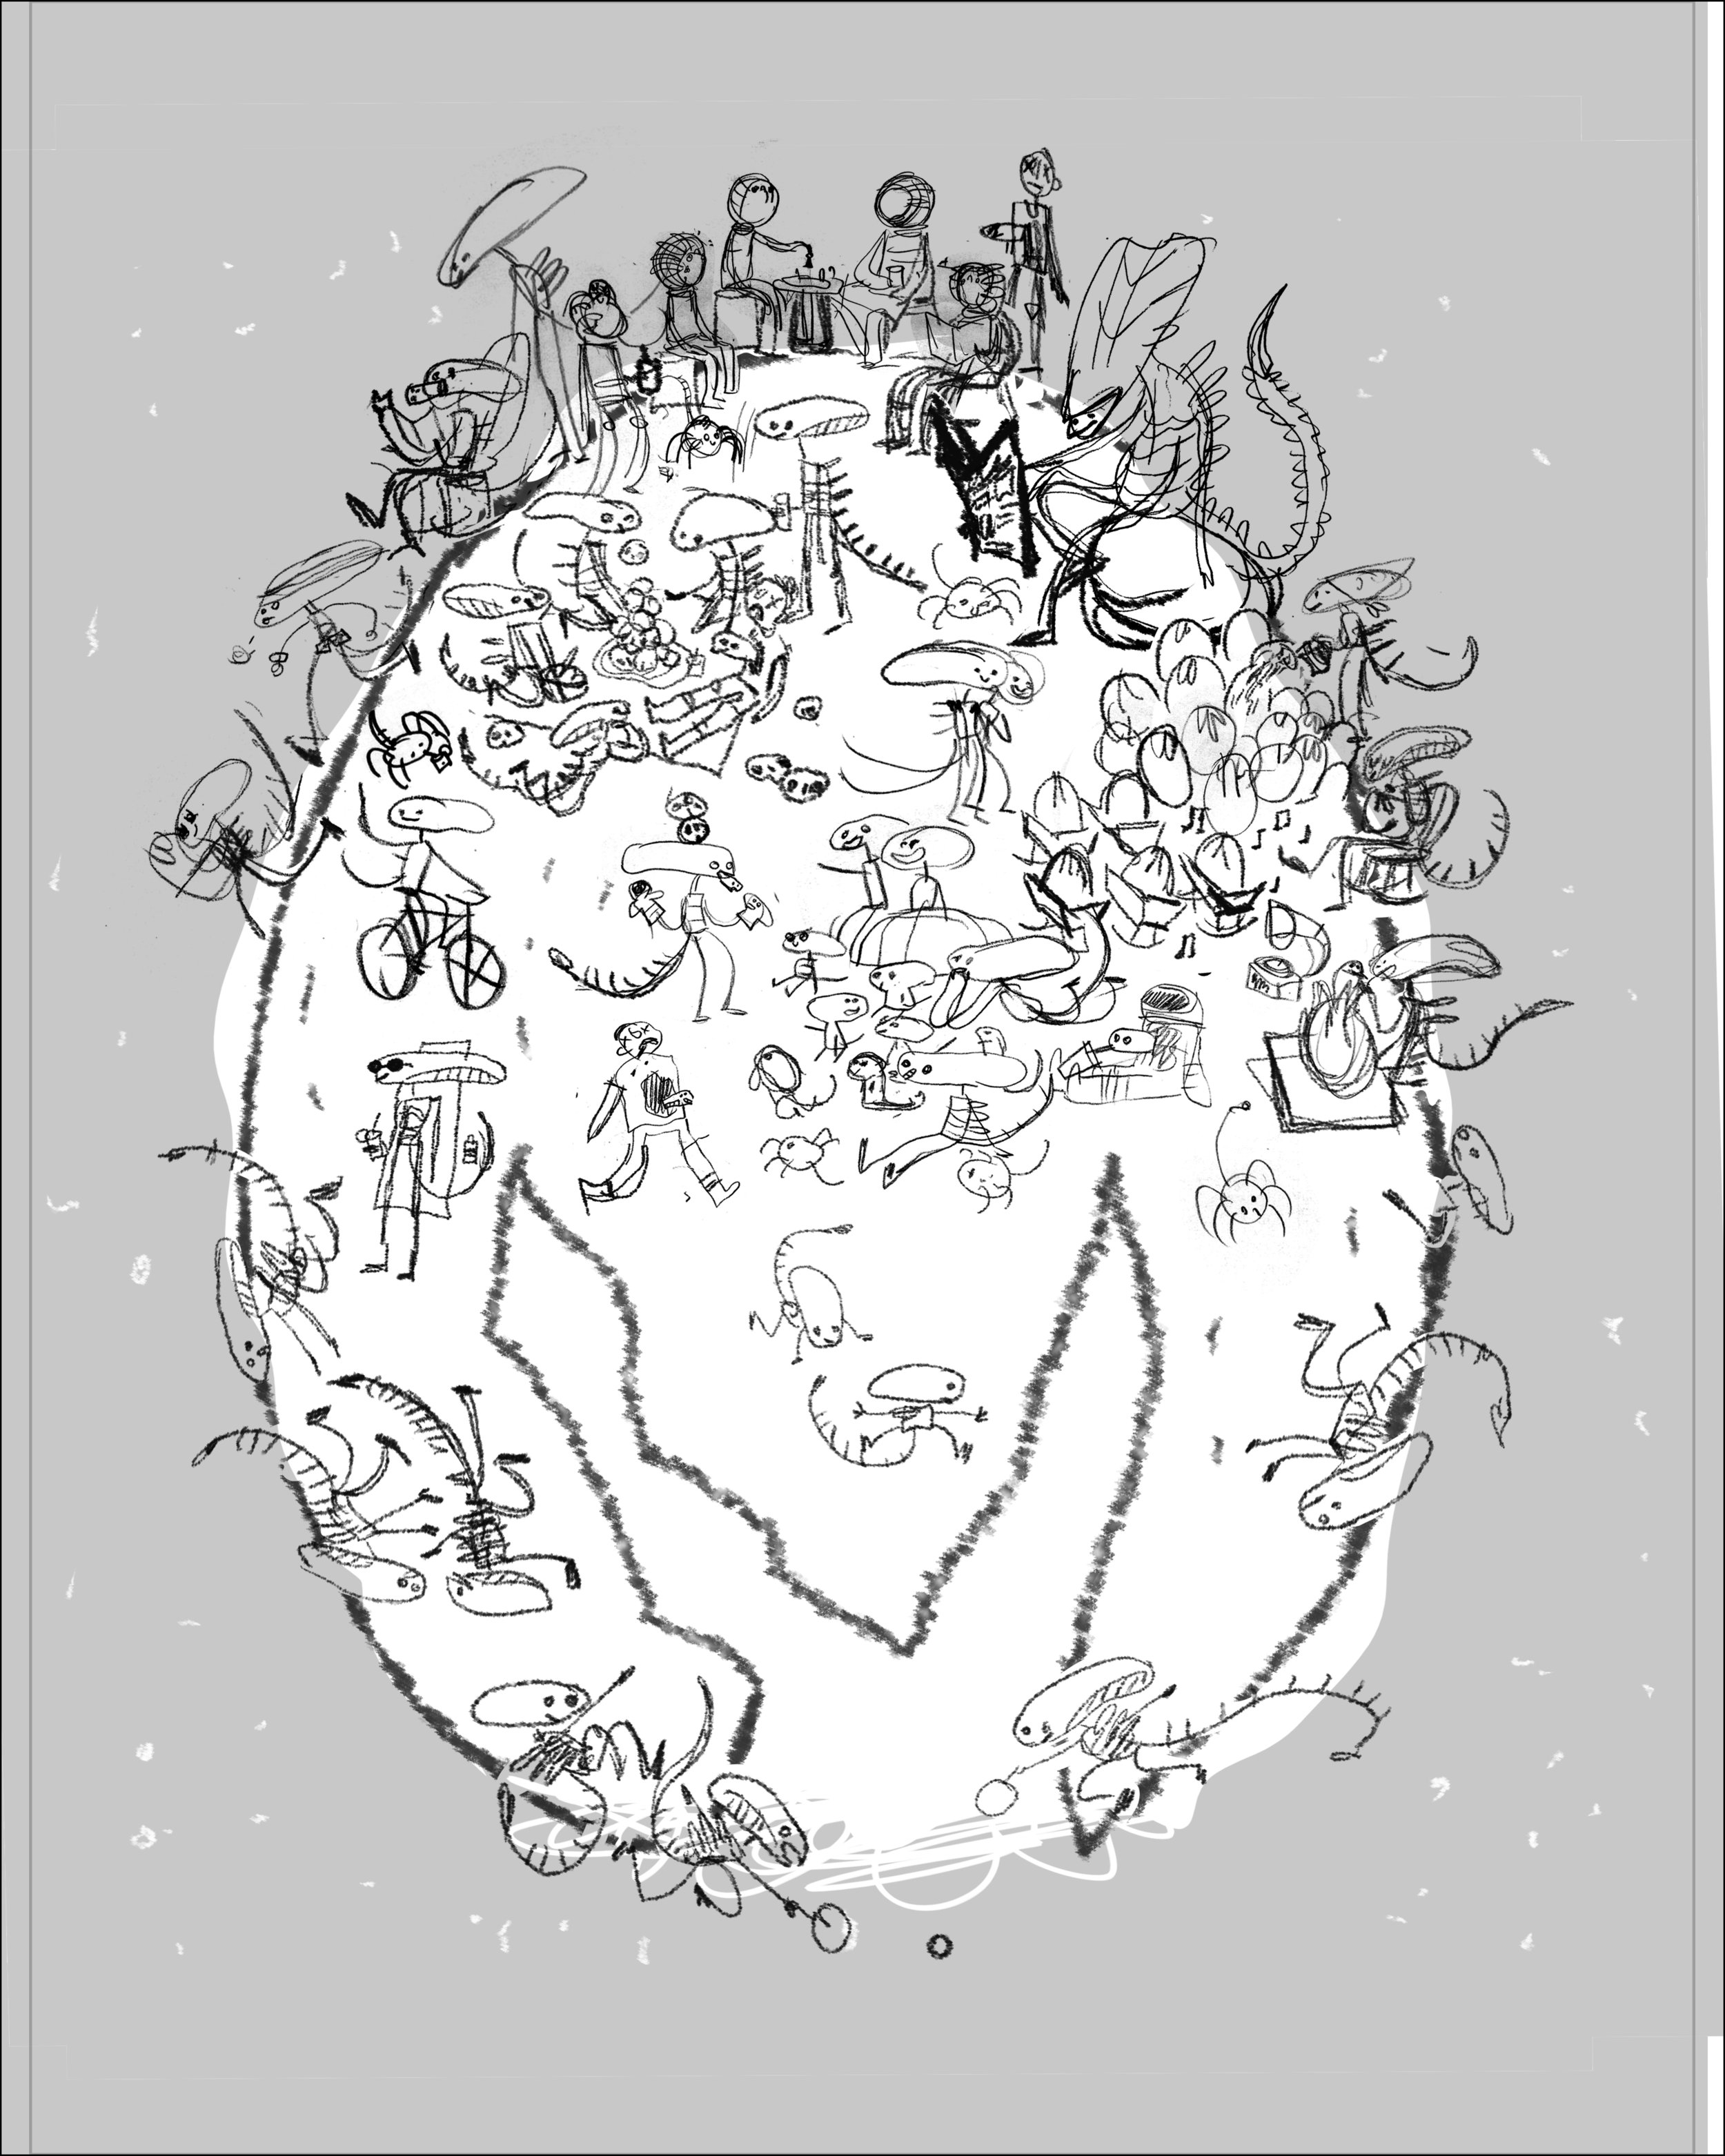 My favorite little moments were cut out and arranged onto the egg in photoshop. Real rough.